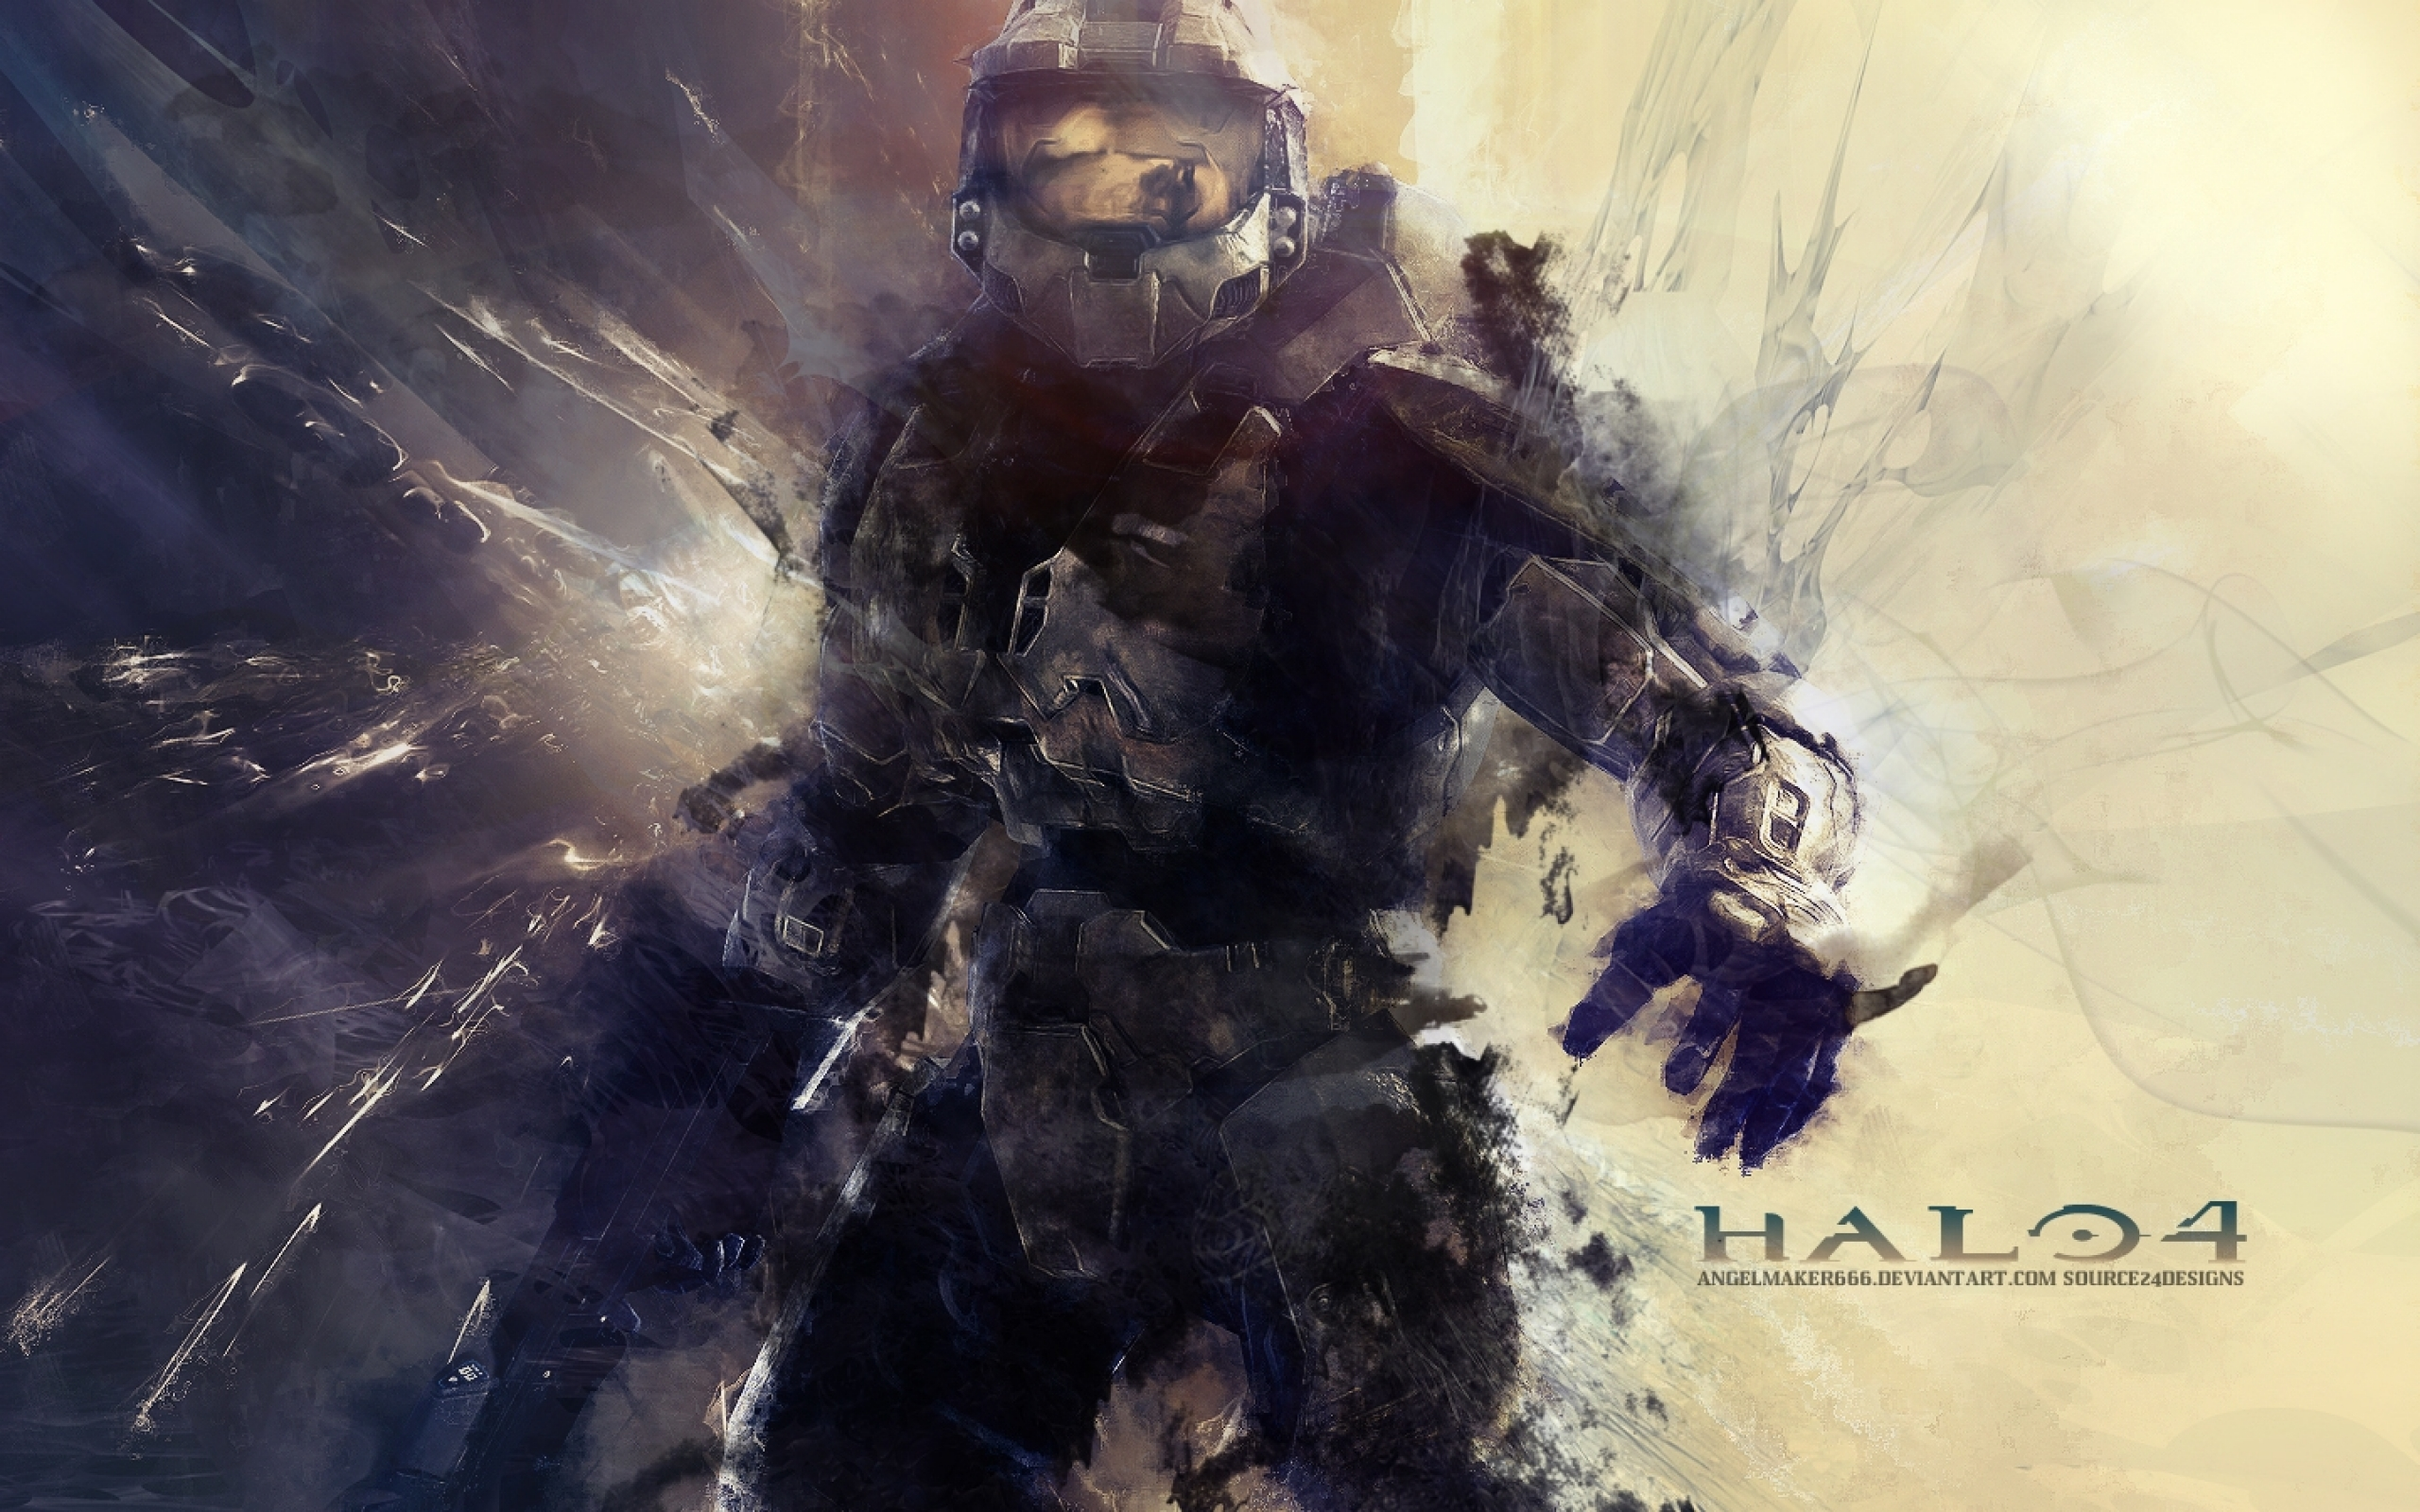 Halo hd Wallpapers4 · Halo hd Wallpapers